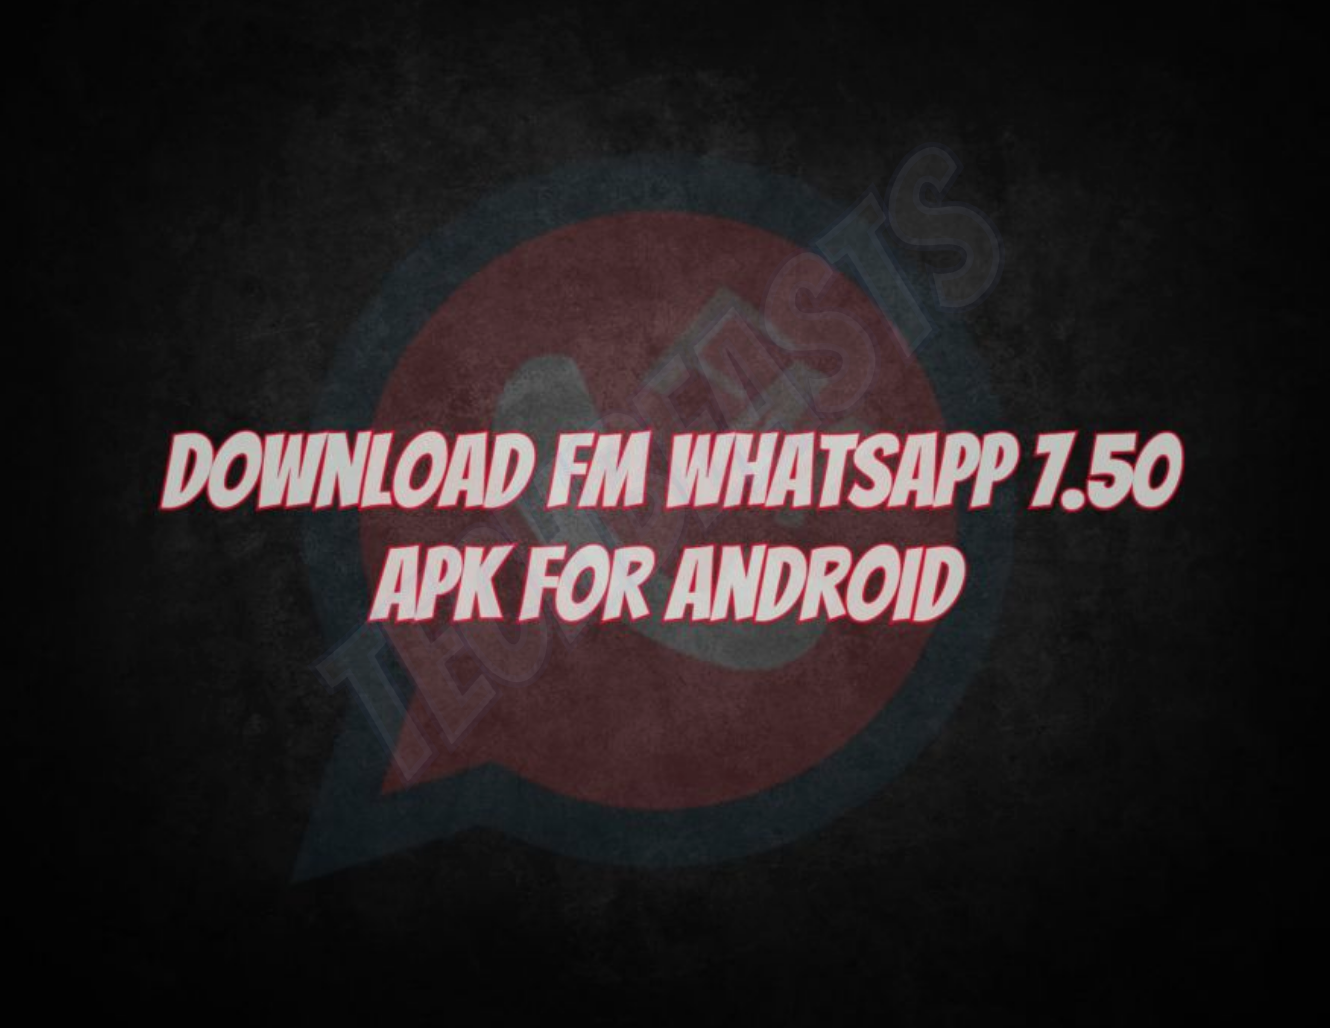 want to download fmwhatsapp latest version 2018